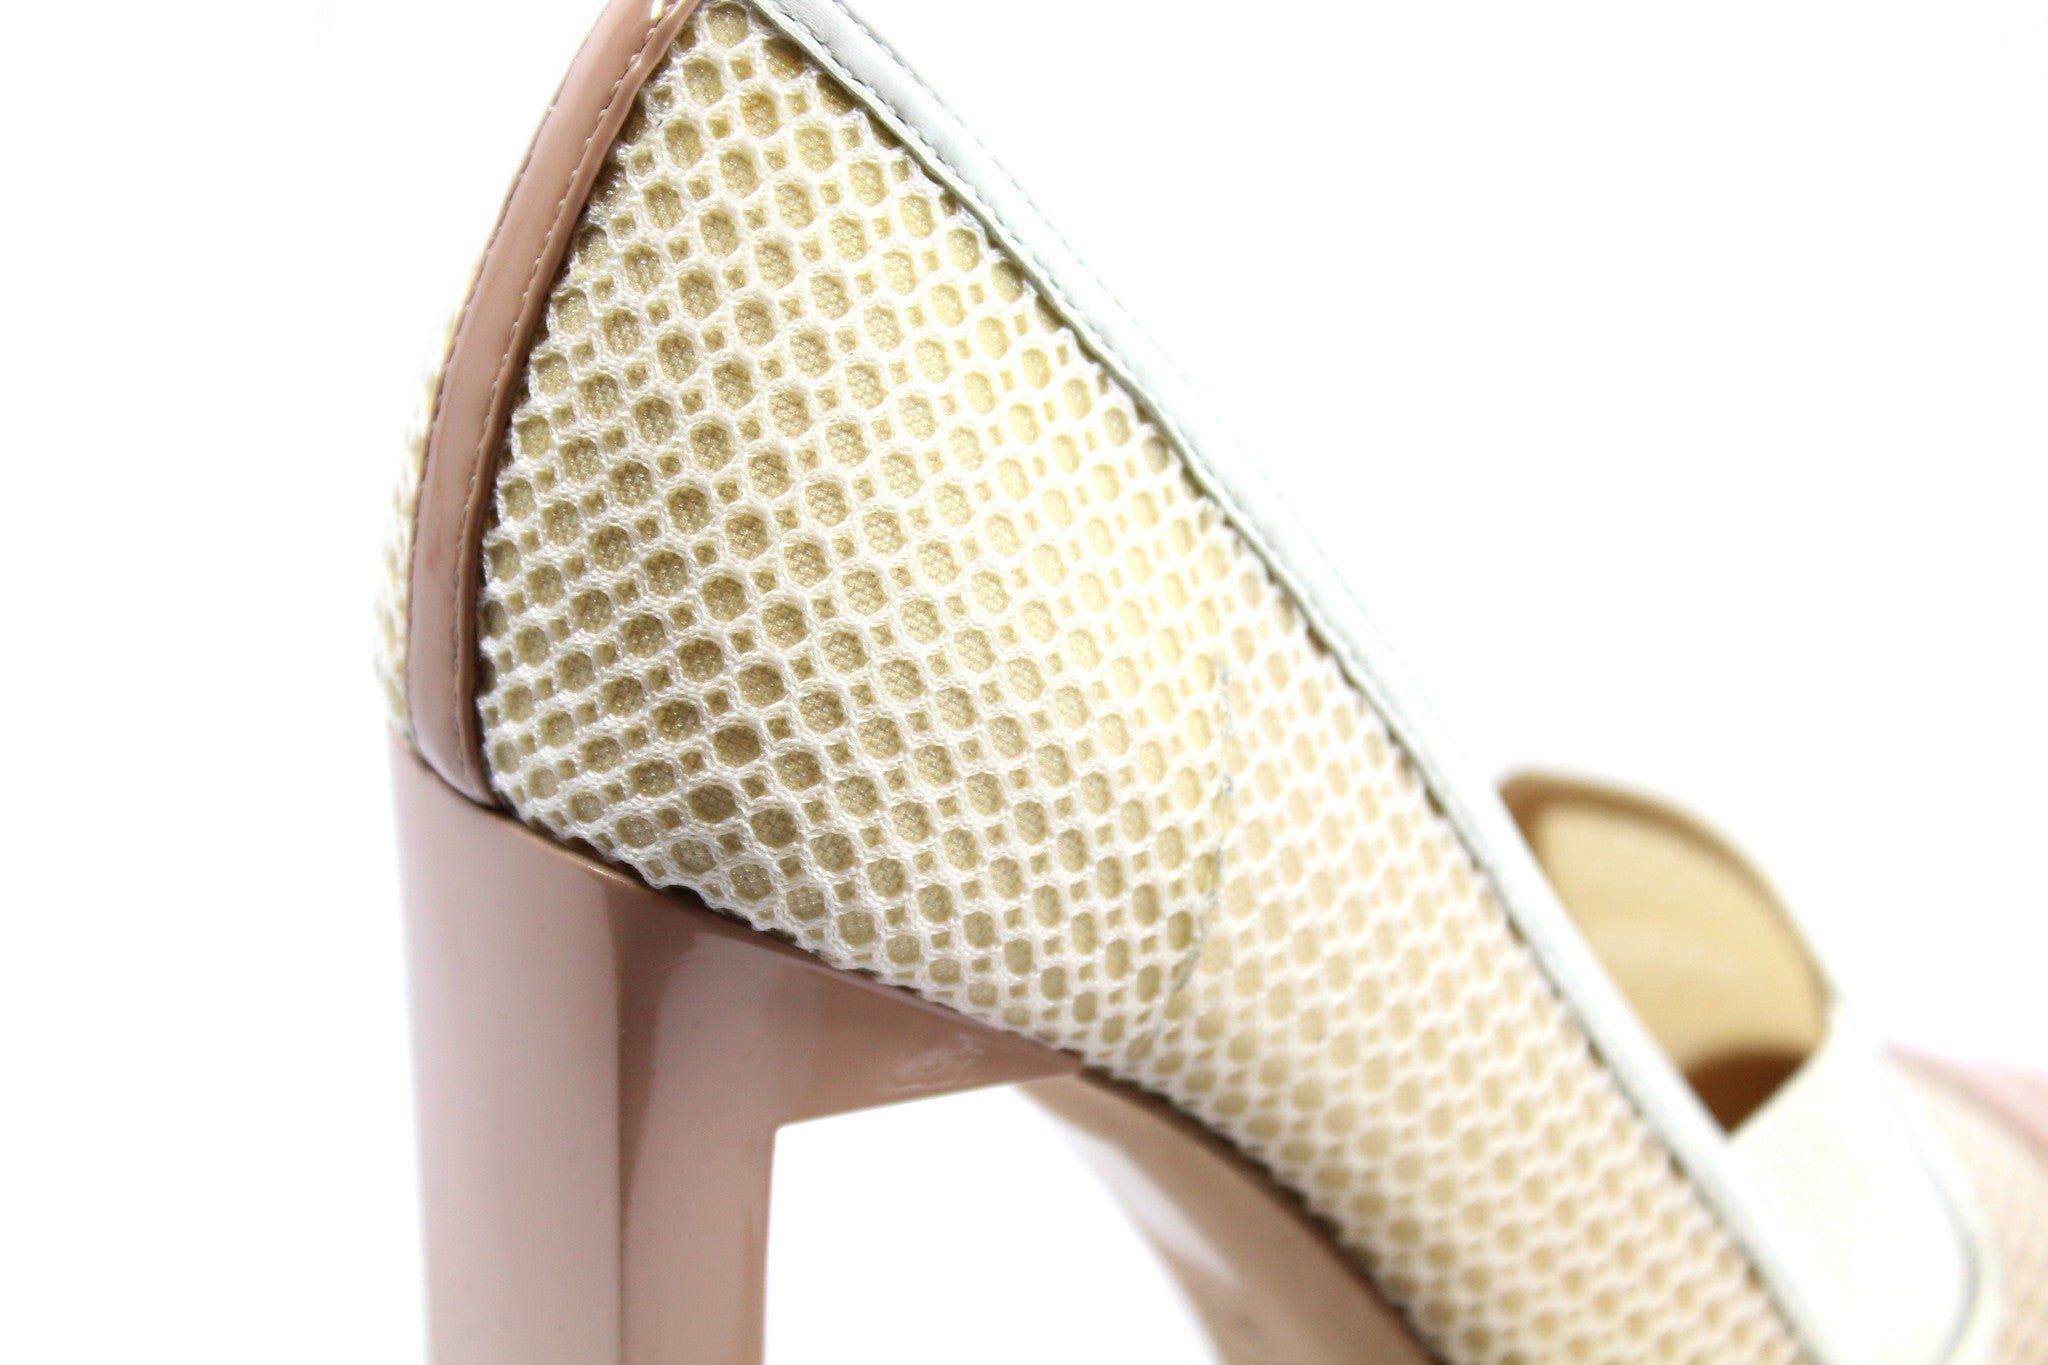 Reed Krakoff Mesh Atlas Nude and White Pumps (Size 38.5) - Encore Consignment - 10